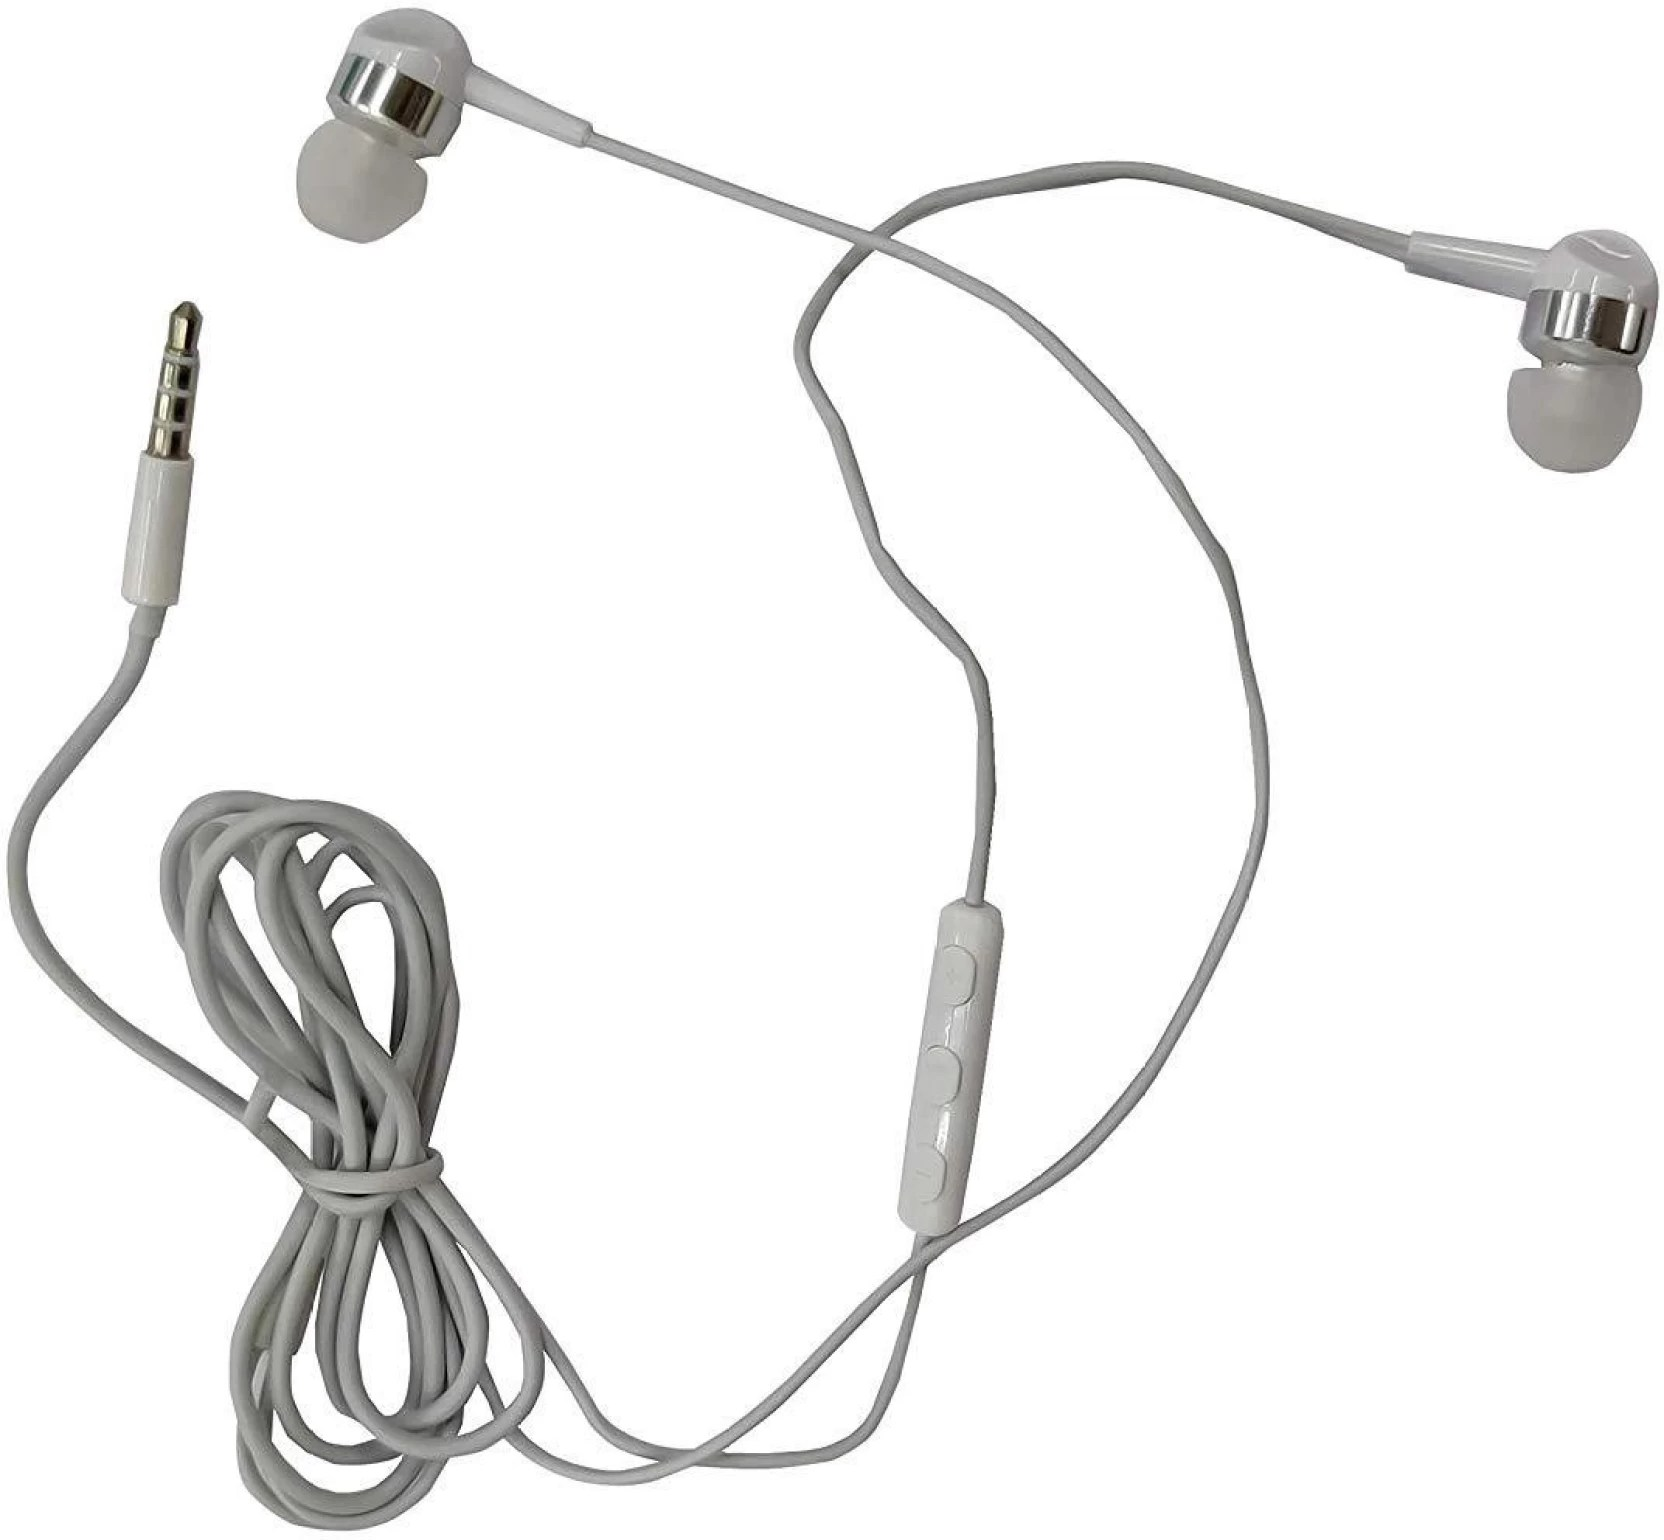 medium resolution of pacificdeals 3 5mm earphone for asus zenfone 4 zenfone 5 zenfone 6 black wired headset with mic white in the ear